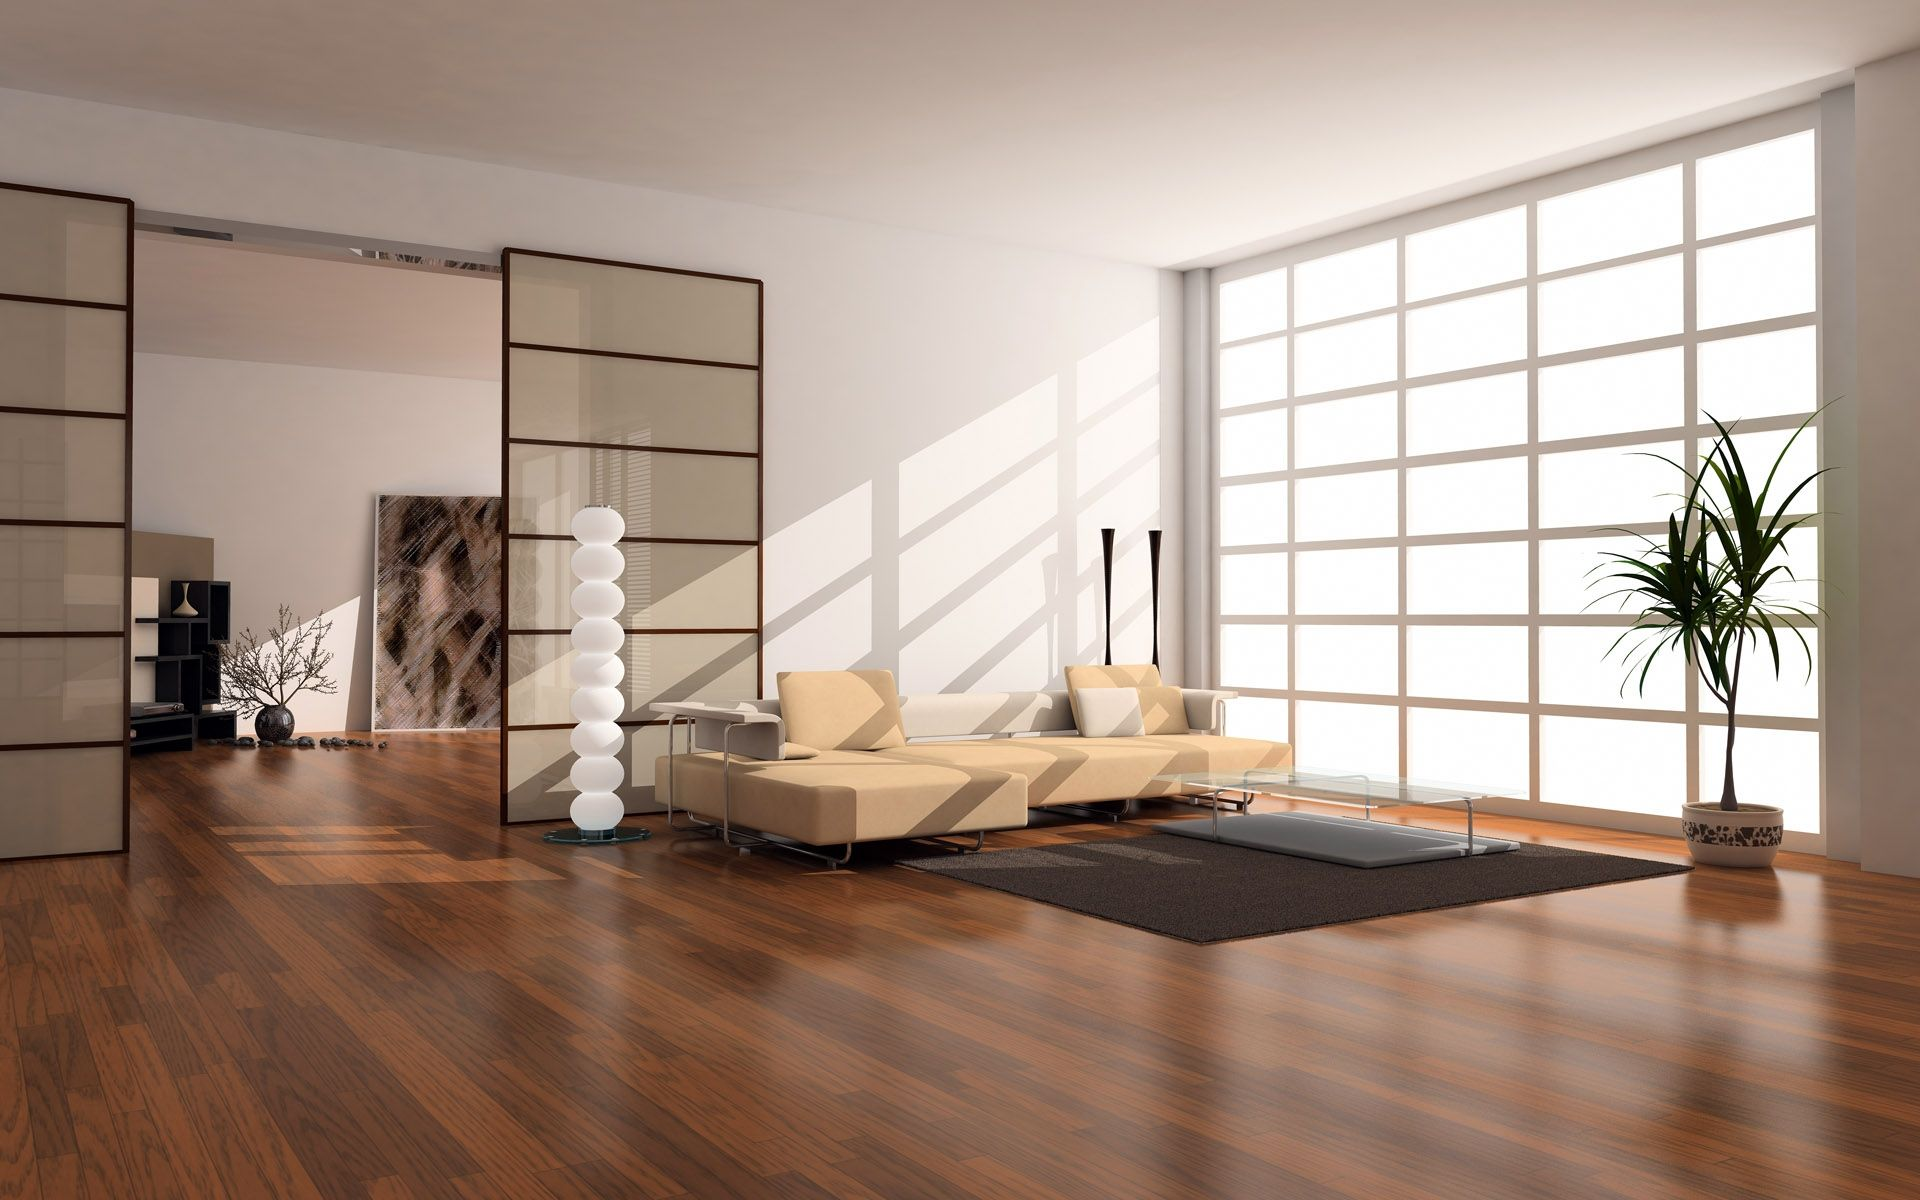 Attrayant Japan Style Apartment Beige Couch Shiny Wood Floors Create Warm Excerpt  Japanese Bedroom. Apartment Design. Design District Apartments. Studio  Apartment ...